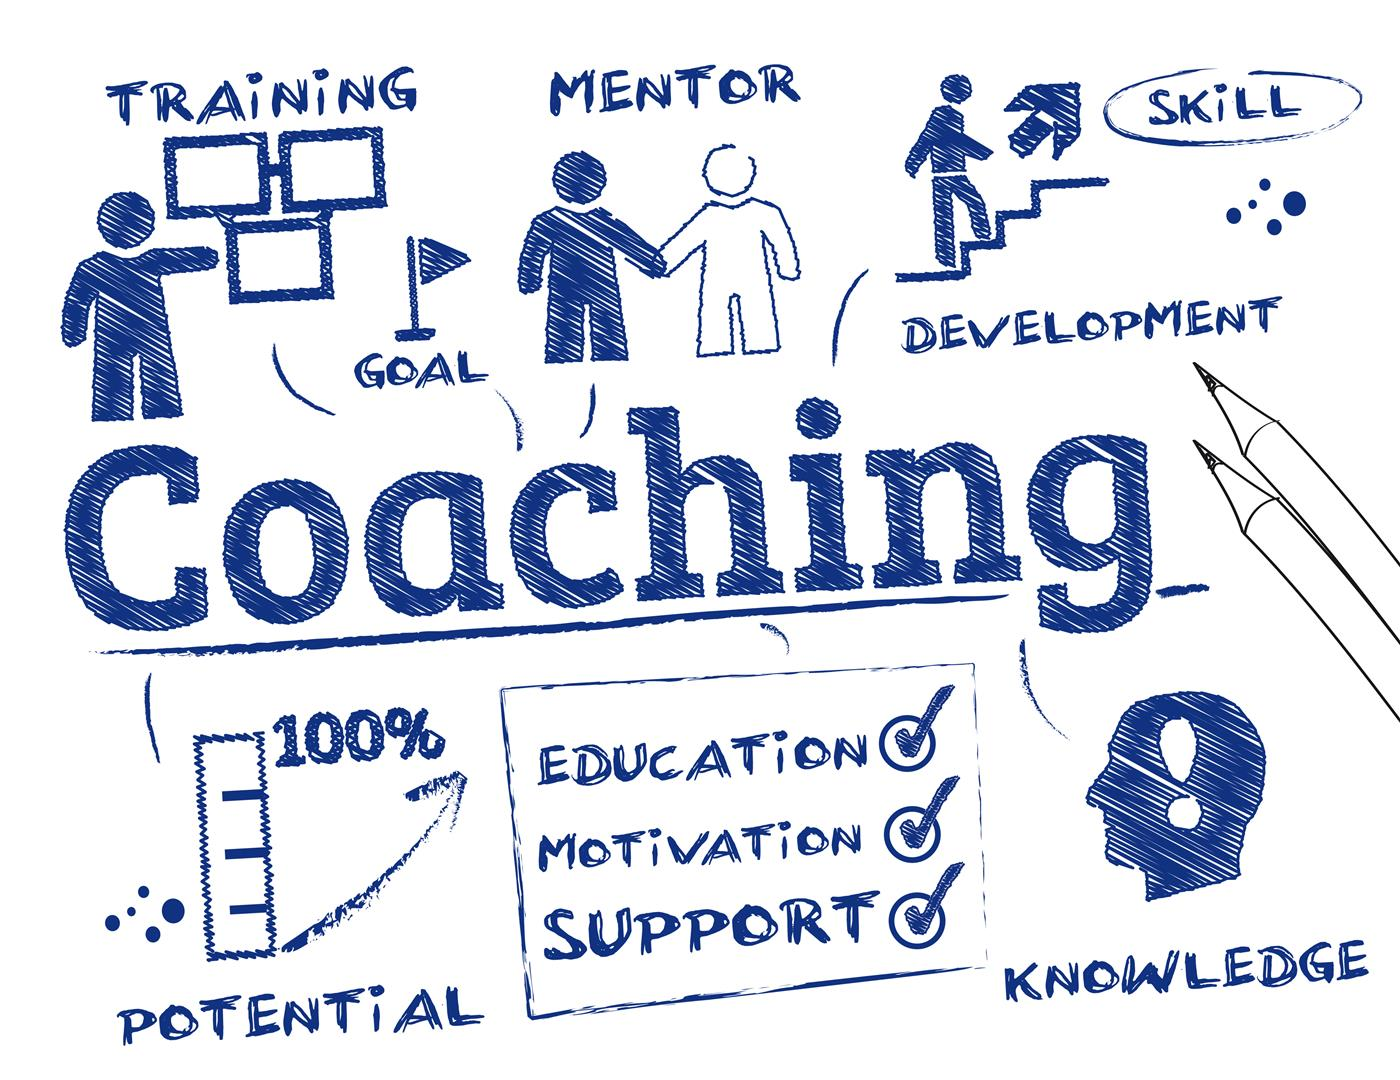 Coaching Diagram